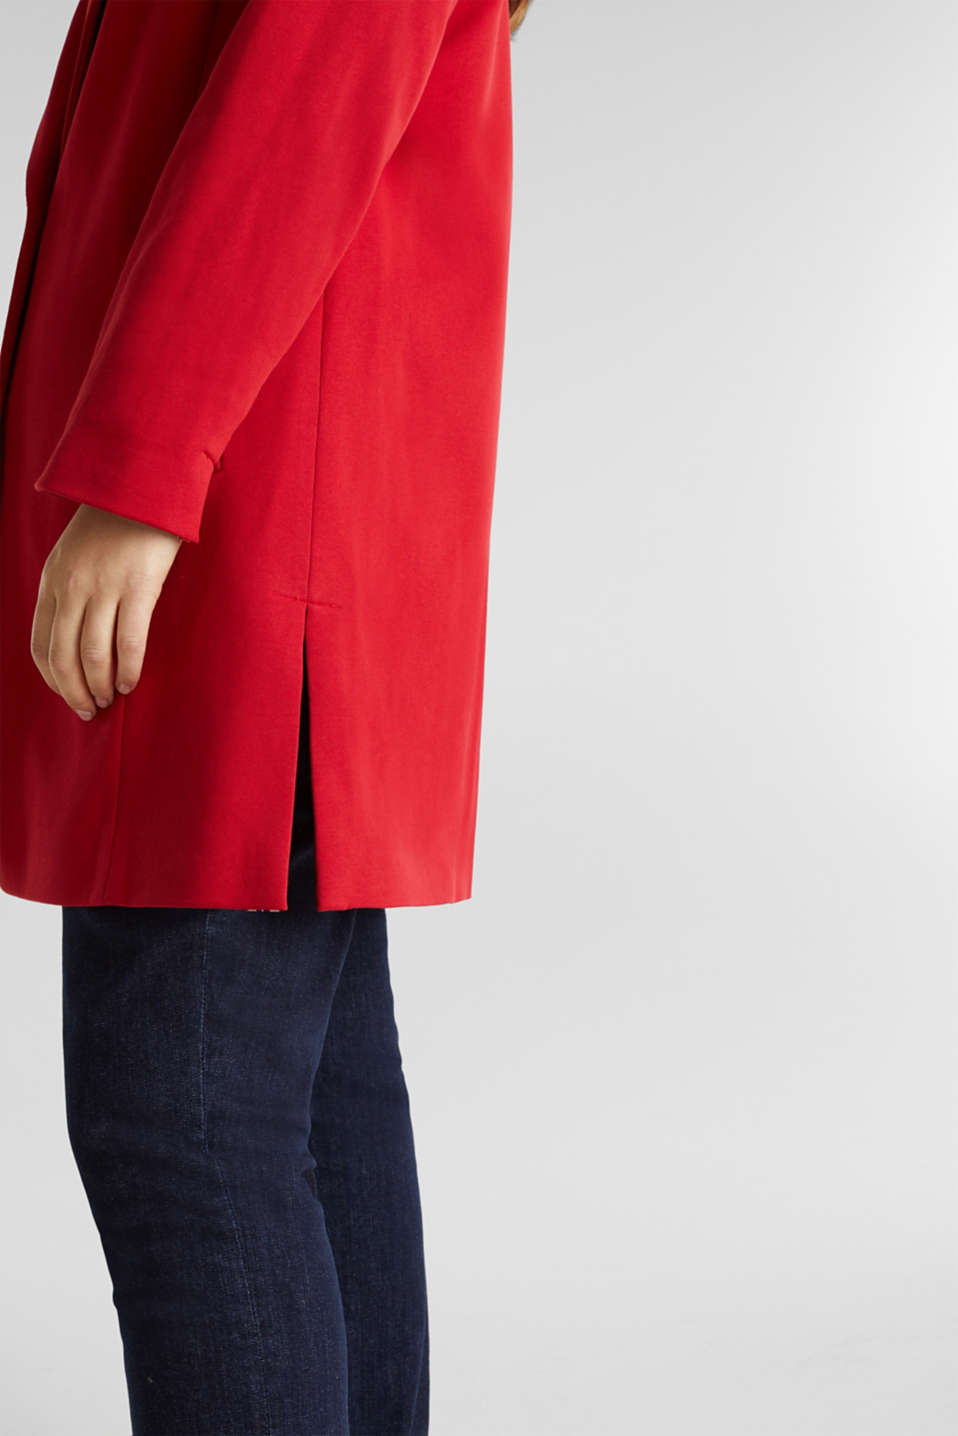 CURVY jersey coat with slits, DARK RED, detail image number 5